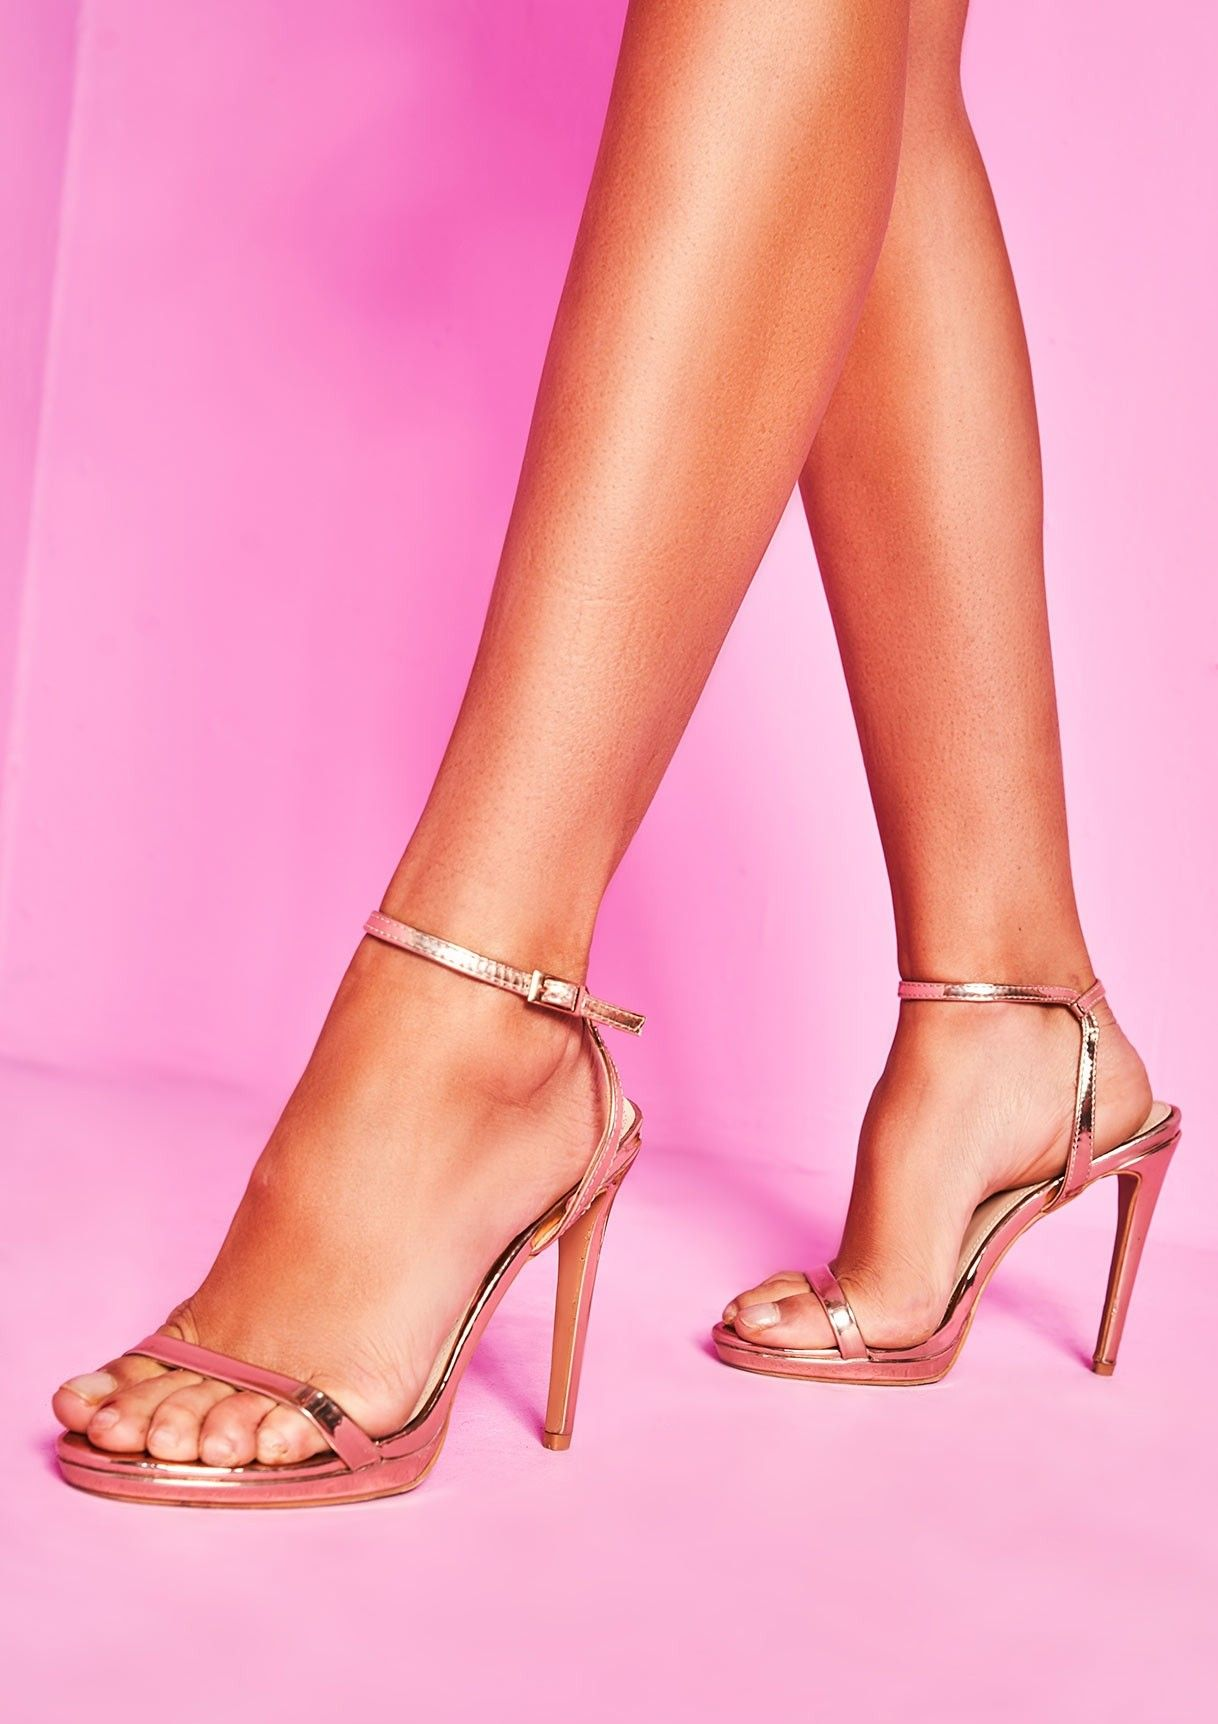 54706047b6dba Davina Rose Gold Patent Ankle Strap High Heels in 2019 | ⚡ comin ...